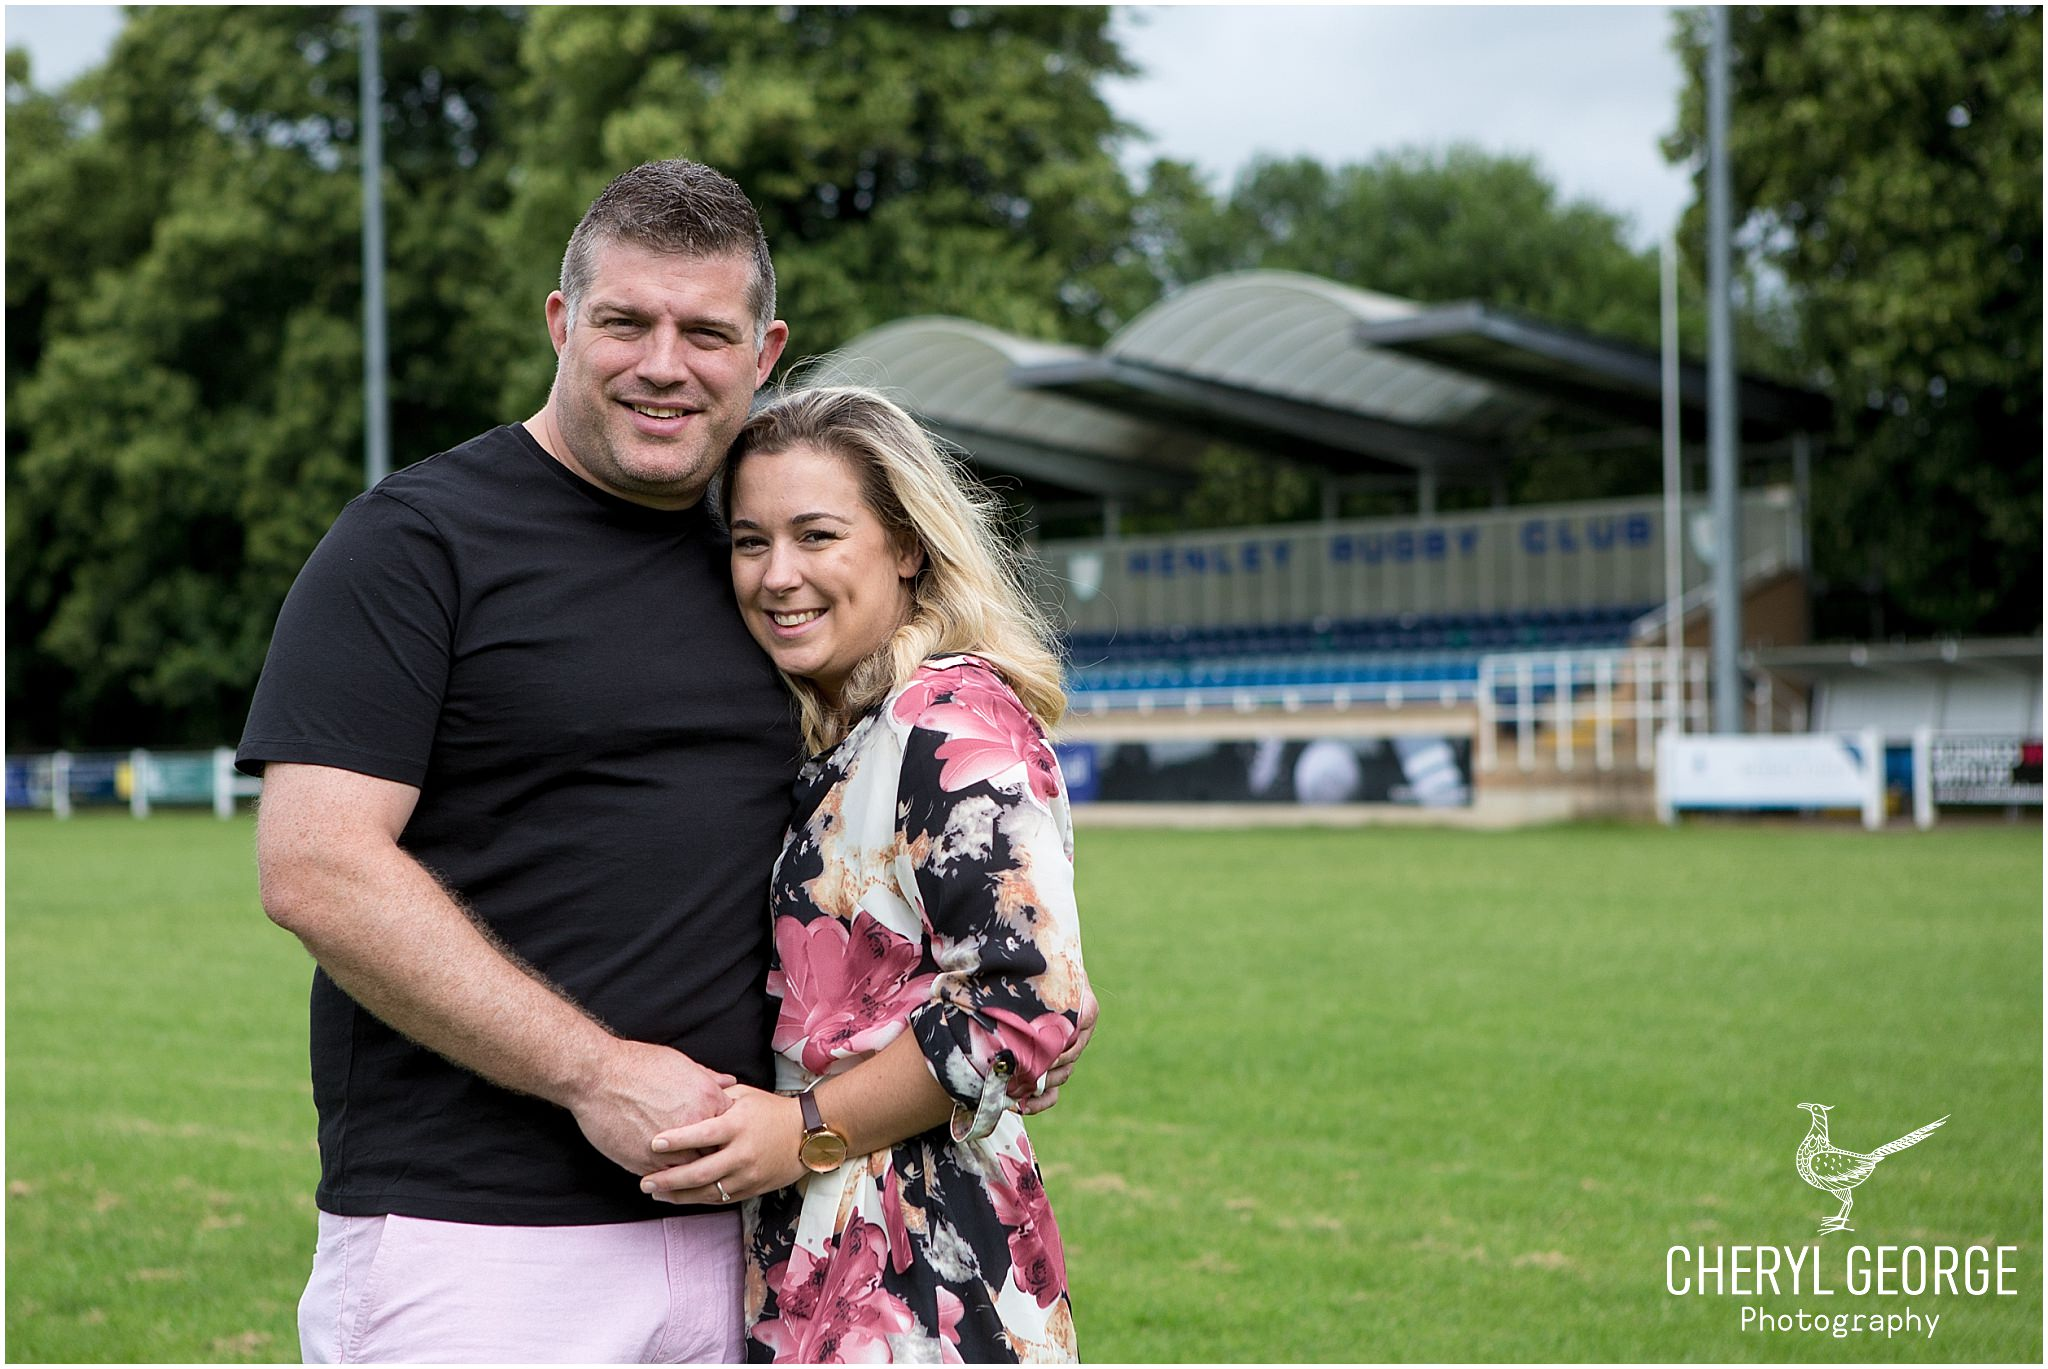 Carly & Jim's engagement shoot at Henley Rugby Club